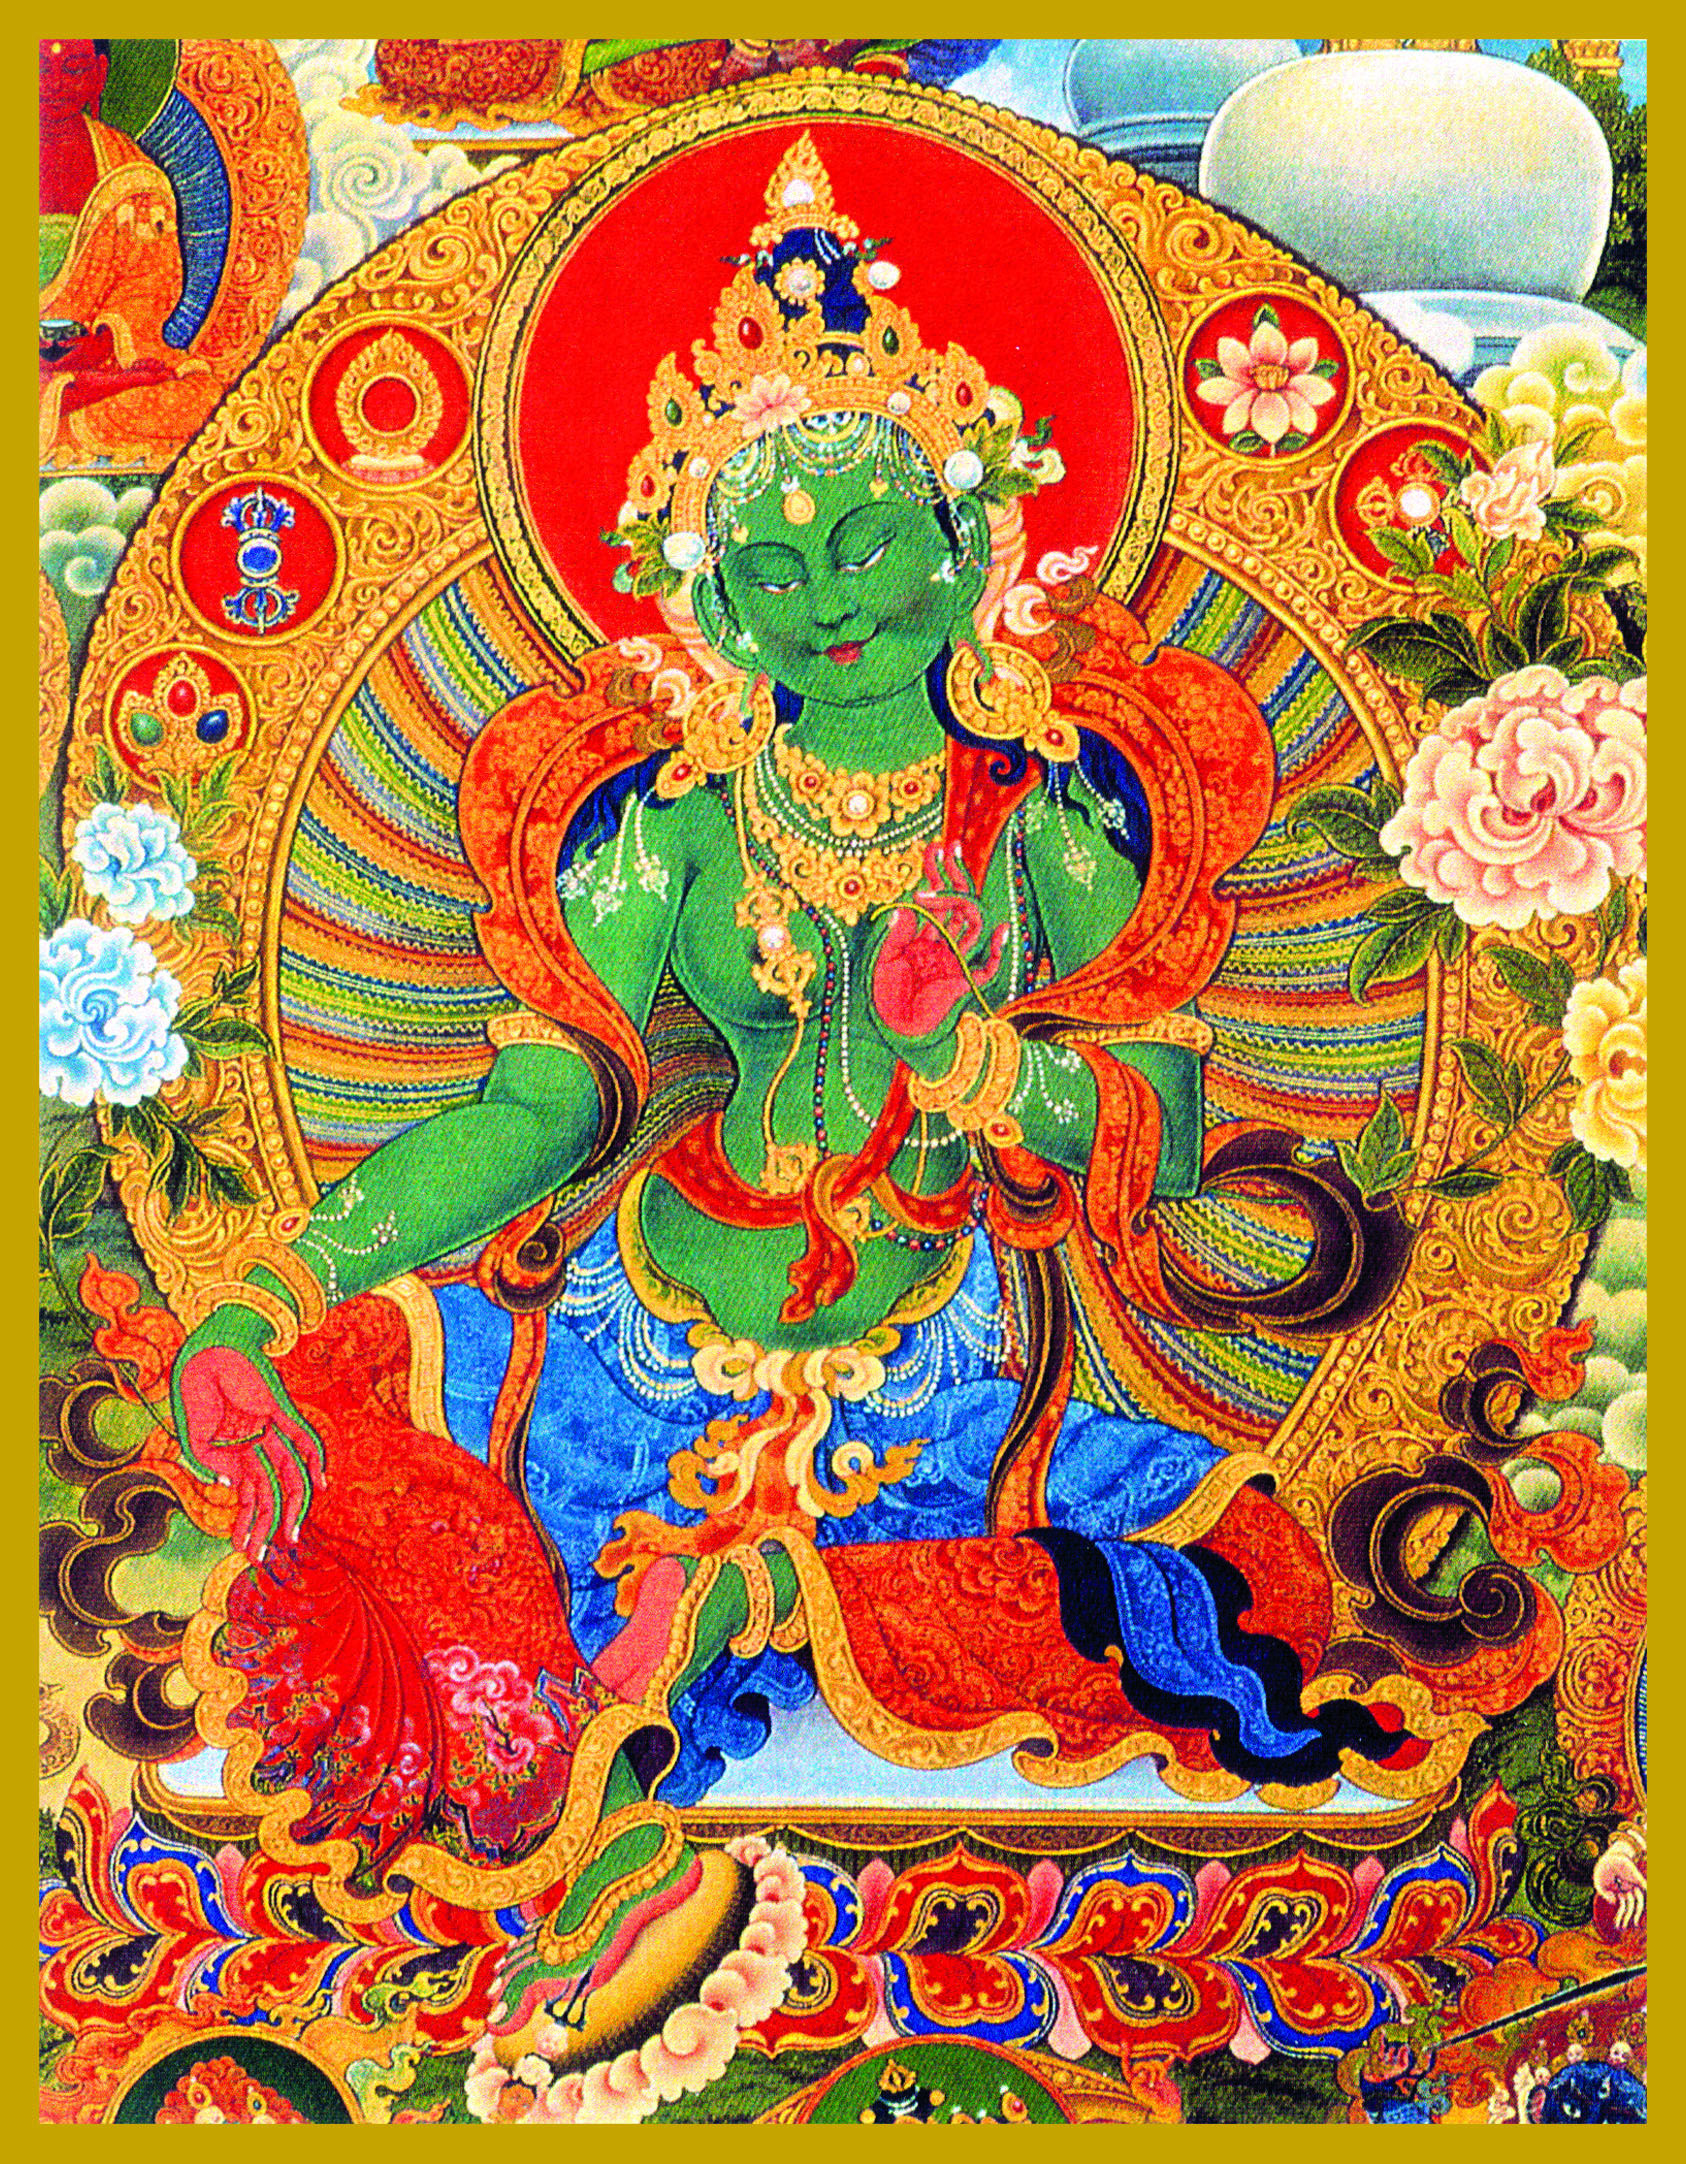 TAR-GN - Green TaraMother of CompassionTara was born of a tear of Avalokiteshwara -- she is the Mother of Compassion who answers all prayers. Tara appears in as many as 21 different forms and colors, of which White and Green are the oldest. Tara offers health, long life, growth, prosperity and protection to all who call on her.